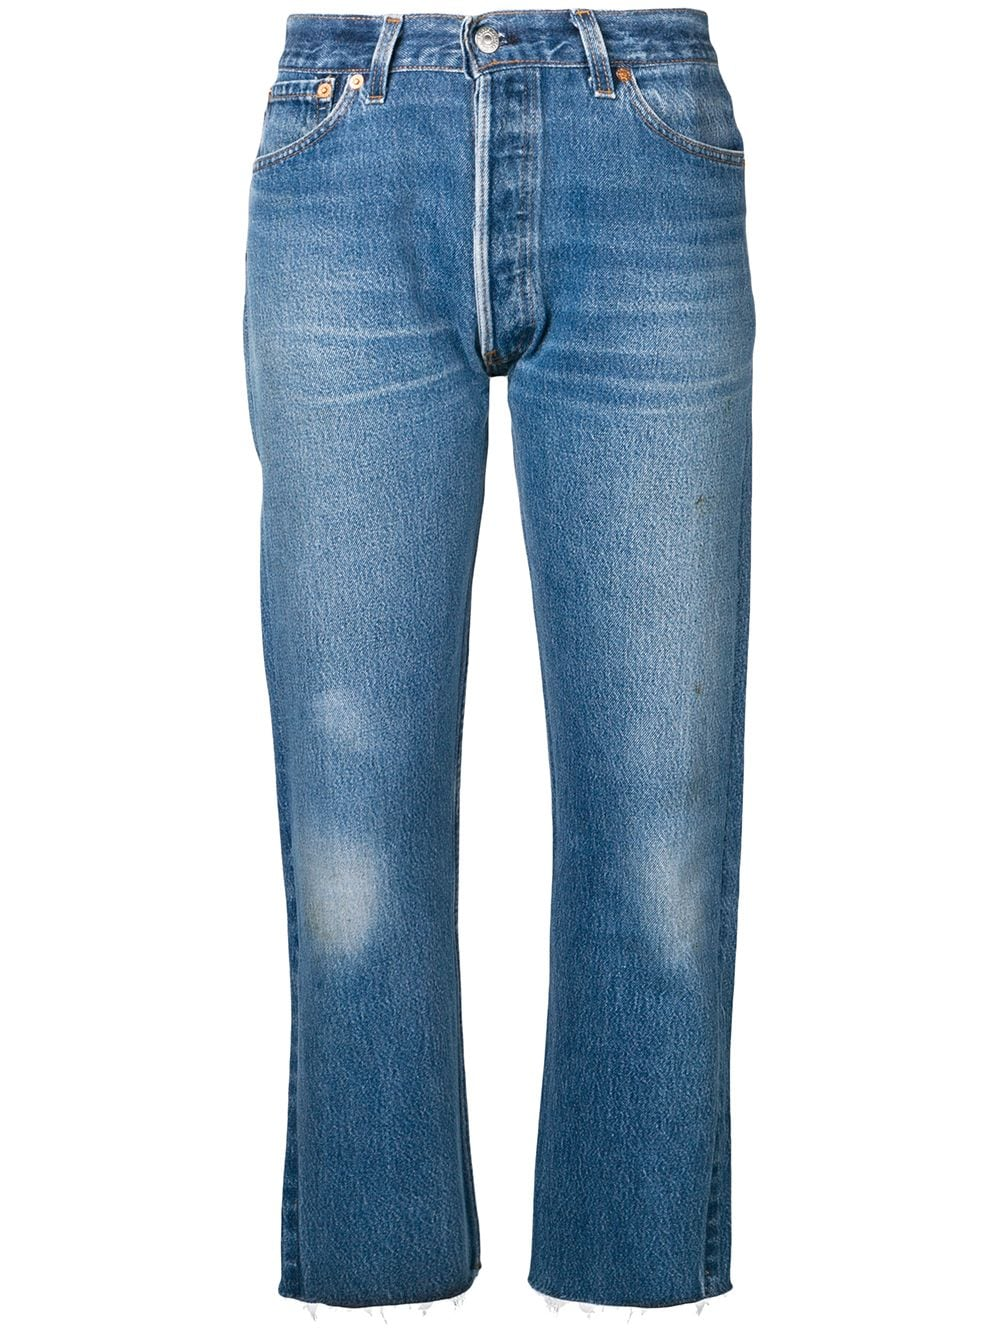 RE/DONE 'Stove Pipe' Jeans - Blau